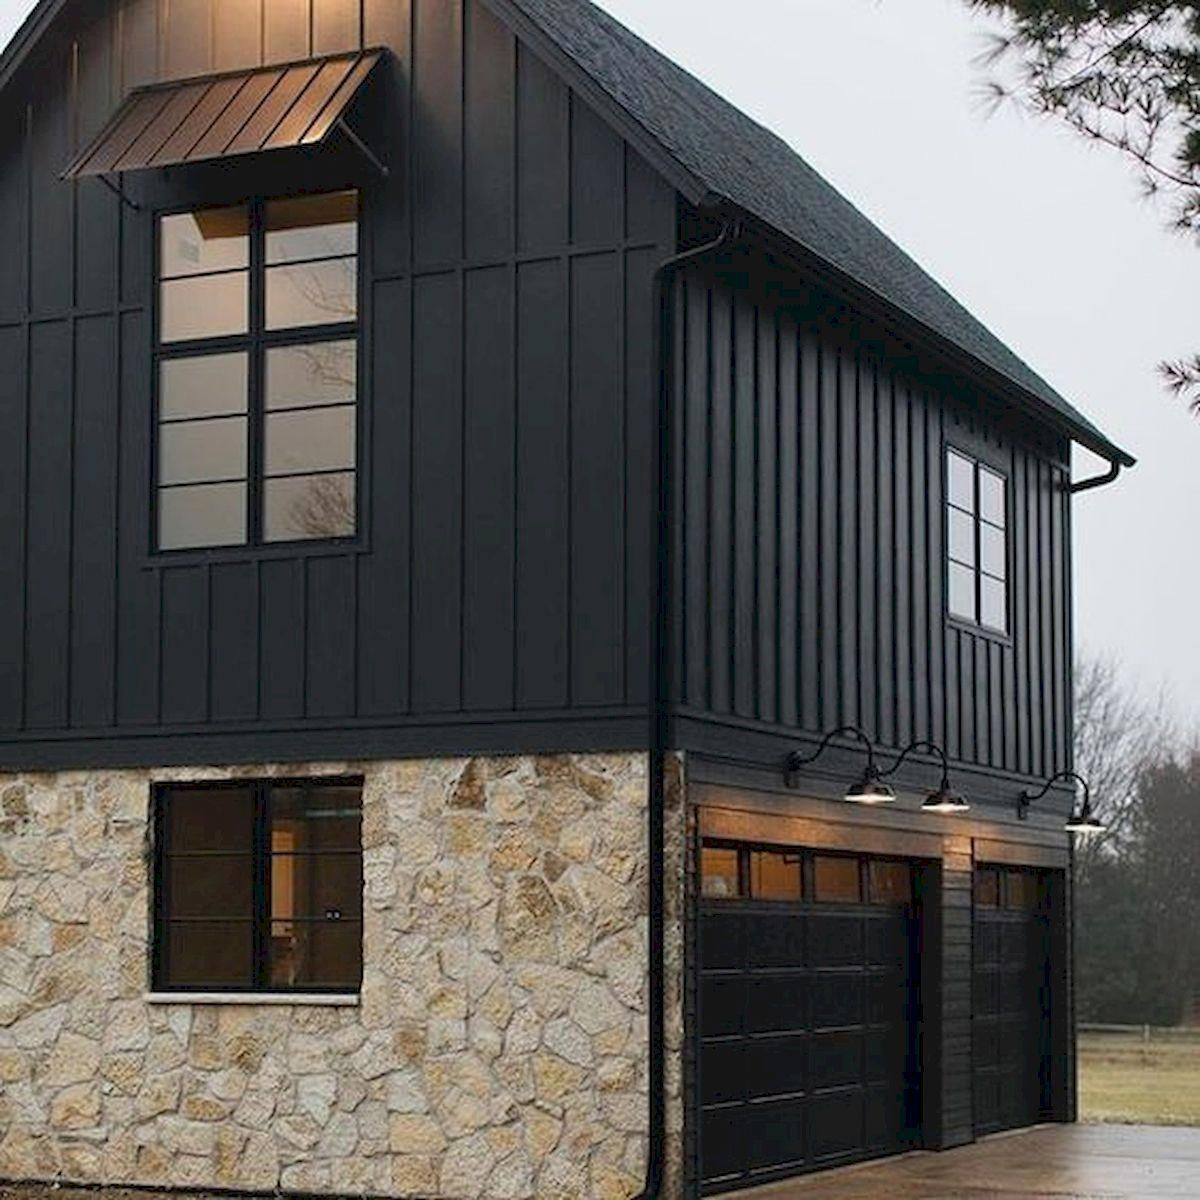 Pin By Kaitlin Catterton On House In 2020 Black Garage Doors House Exterior Exterior Siding